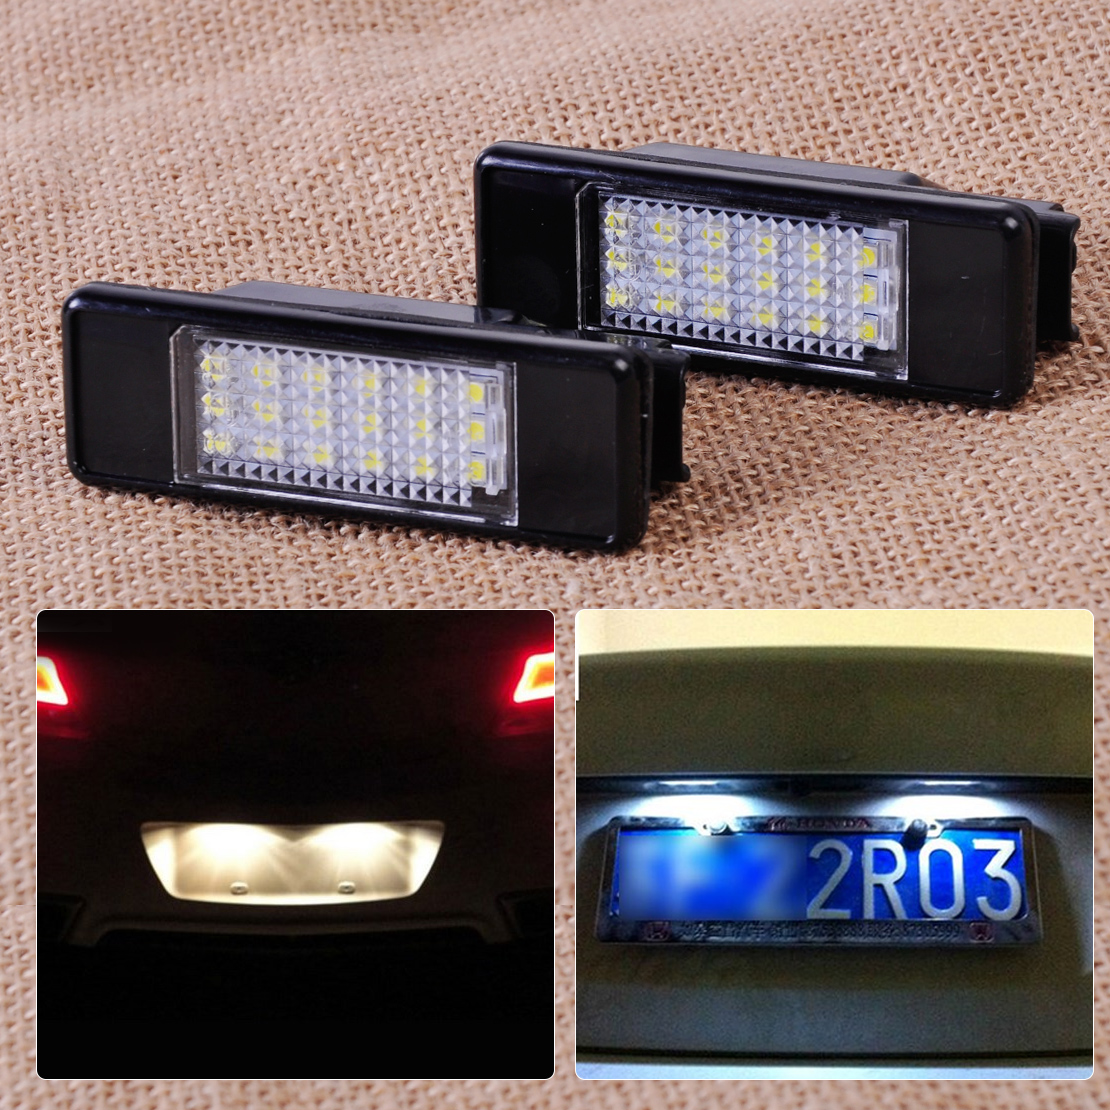 CITALL 2pcs License Plate Light Lamp 18 <font><b>LED</b></font> 6340G9 6340A5 6340G3 6340F0 for <font><b>Peugeot</b></font> 207 308 406 <font><b>407</b></font> Citroen C2 C3 C4 2/3/5-door image